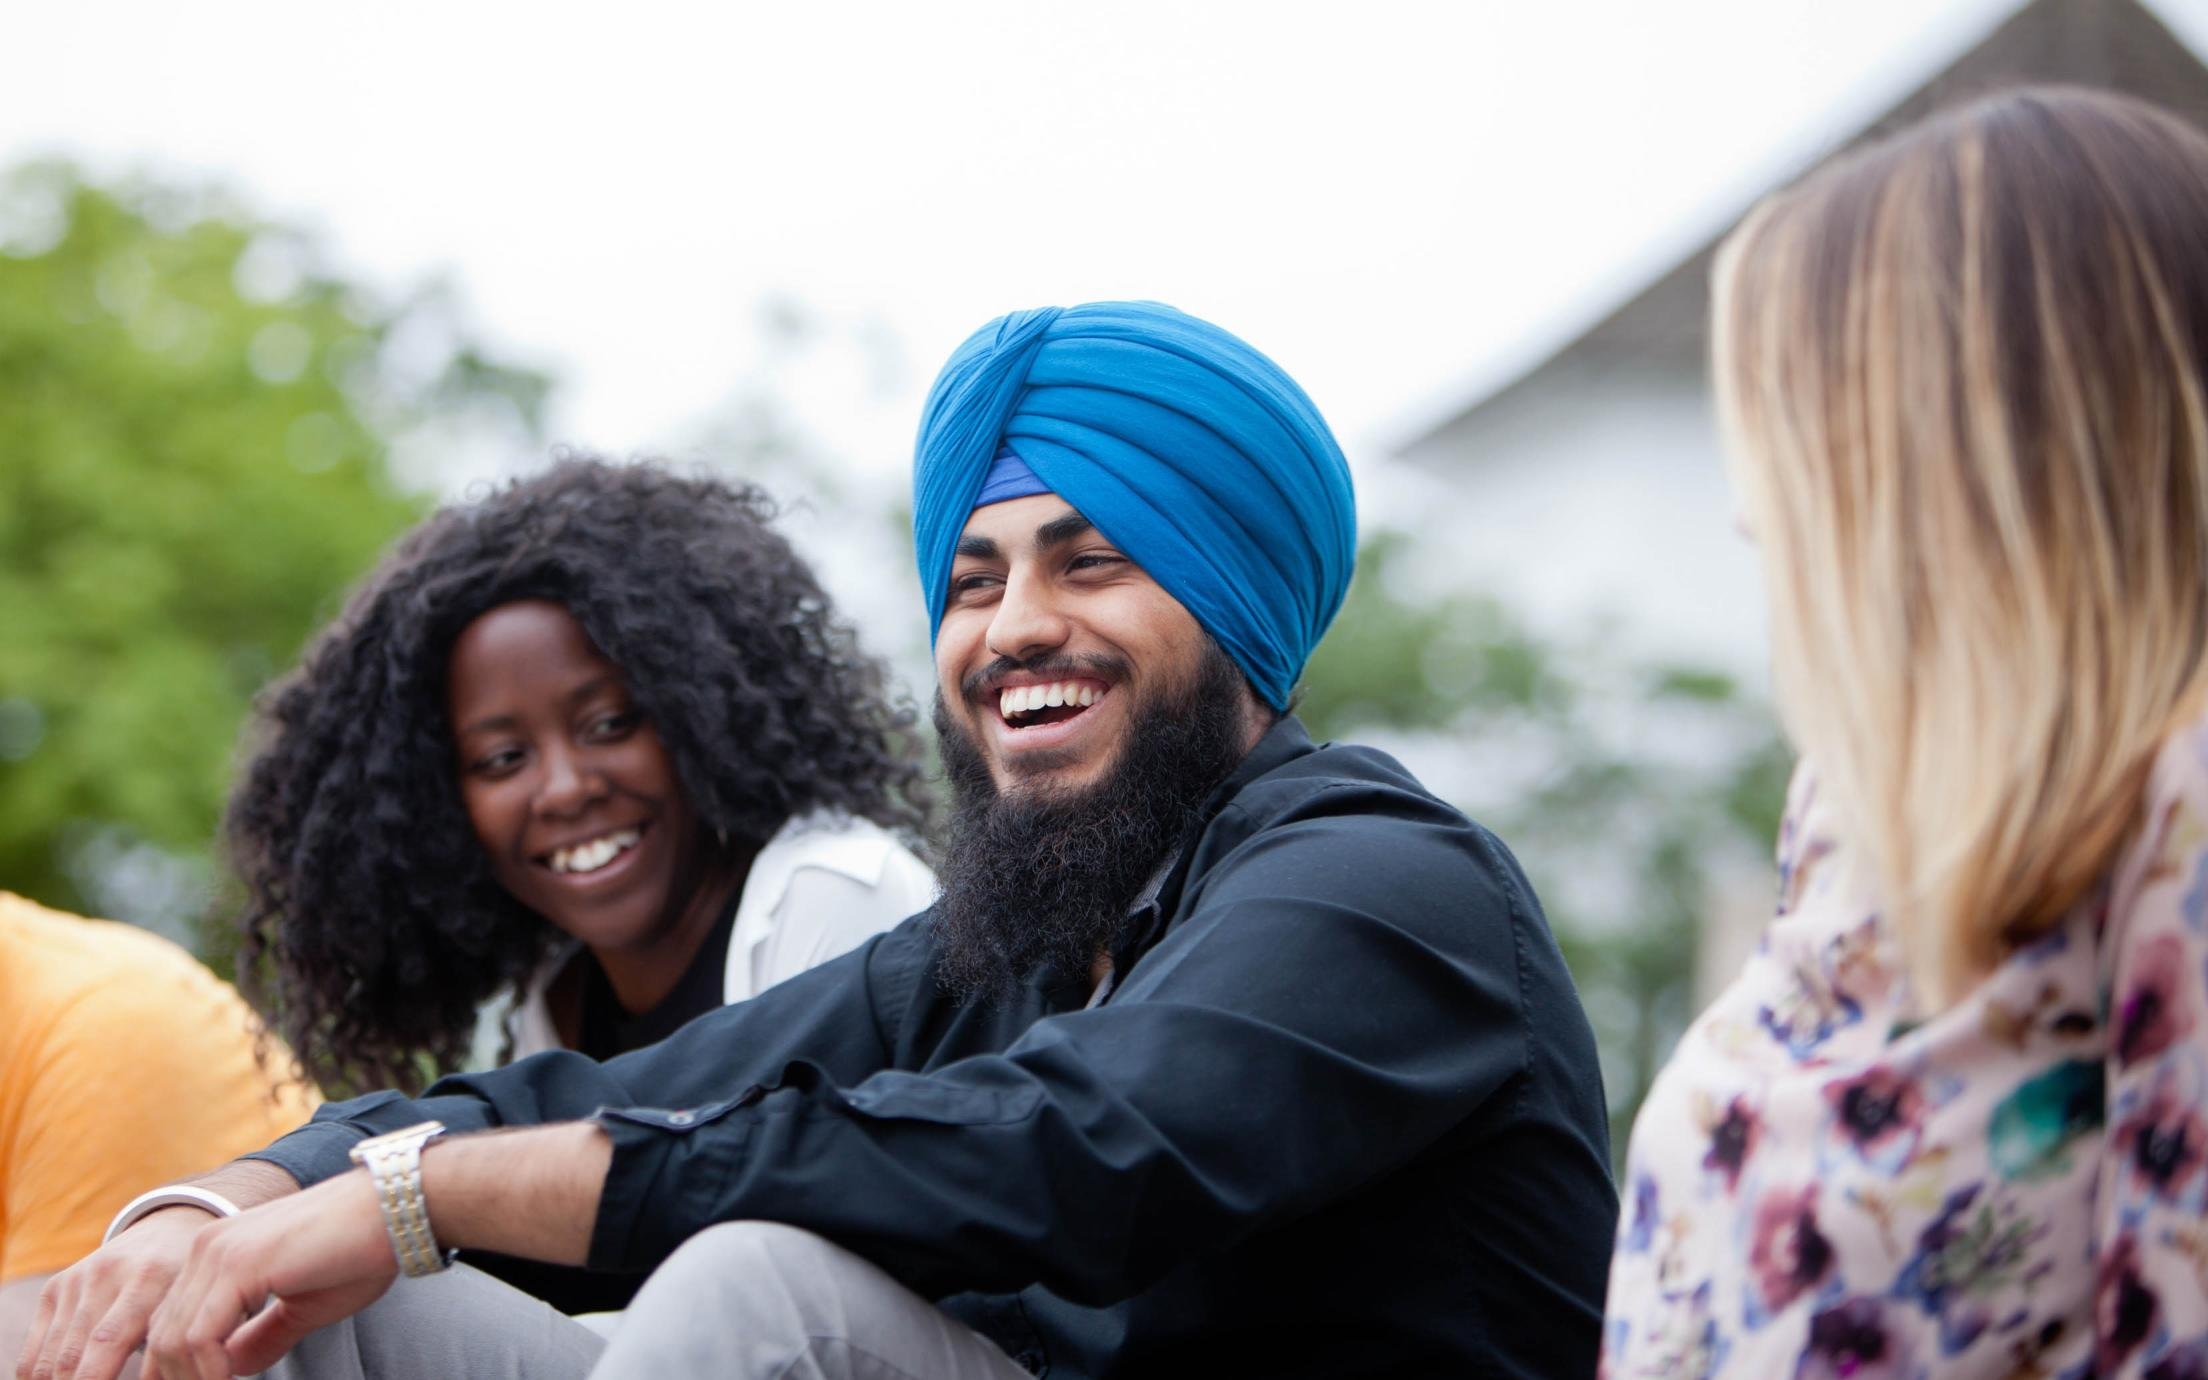 Bachelor of Science, Major, Minor in Psychology students enjoying their time at VIU's campus